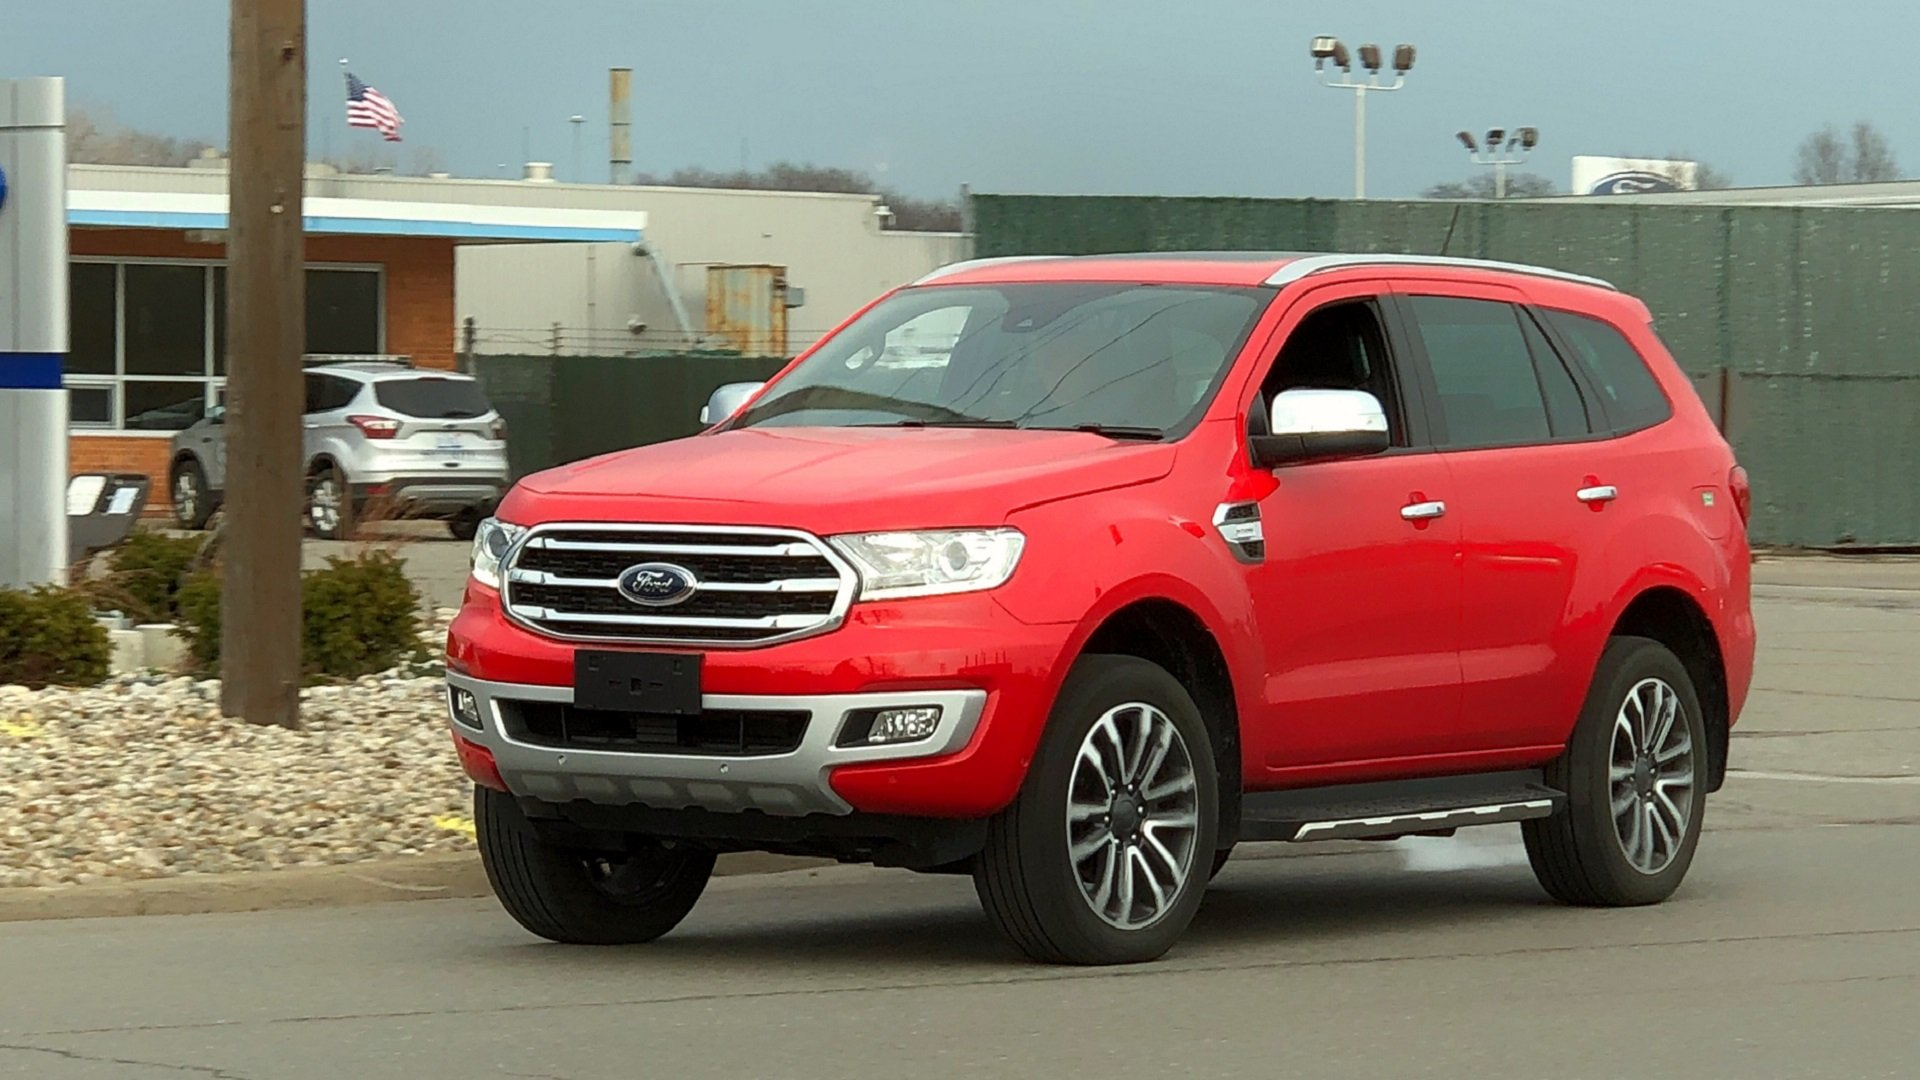 17 A 2020 Ford Everest Model